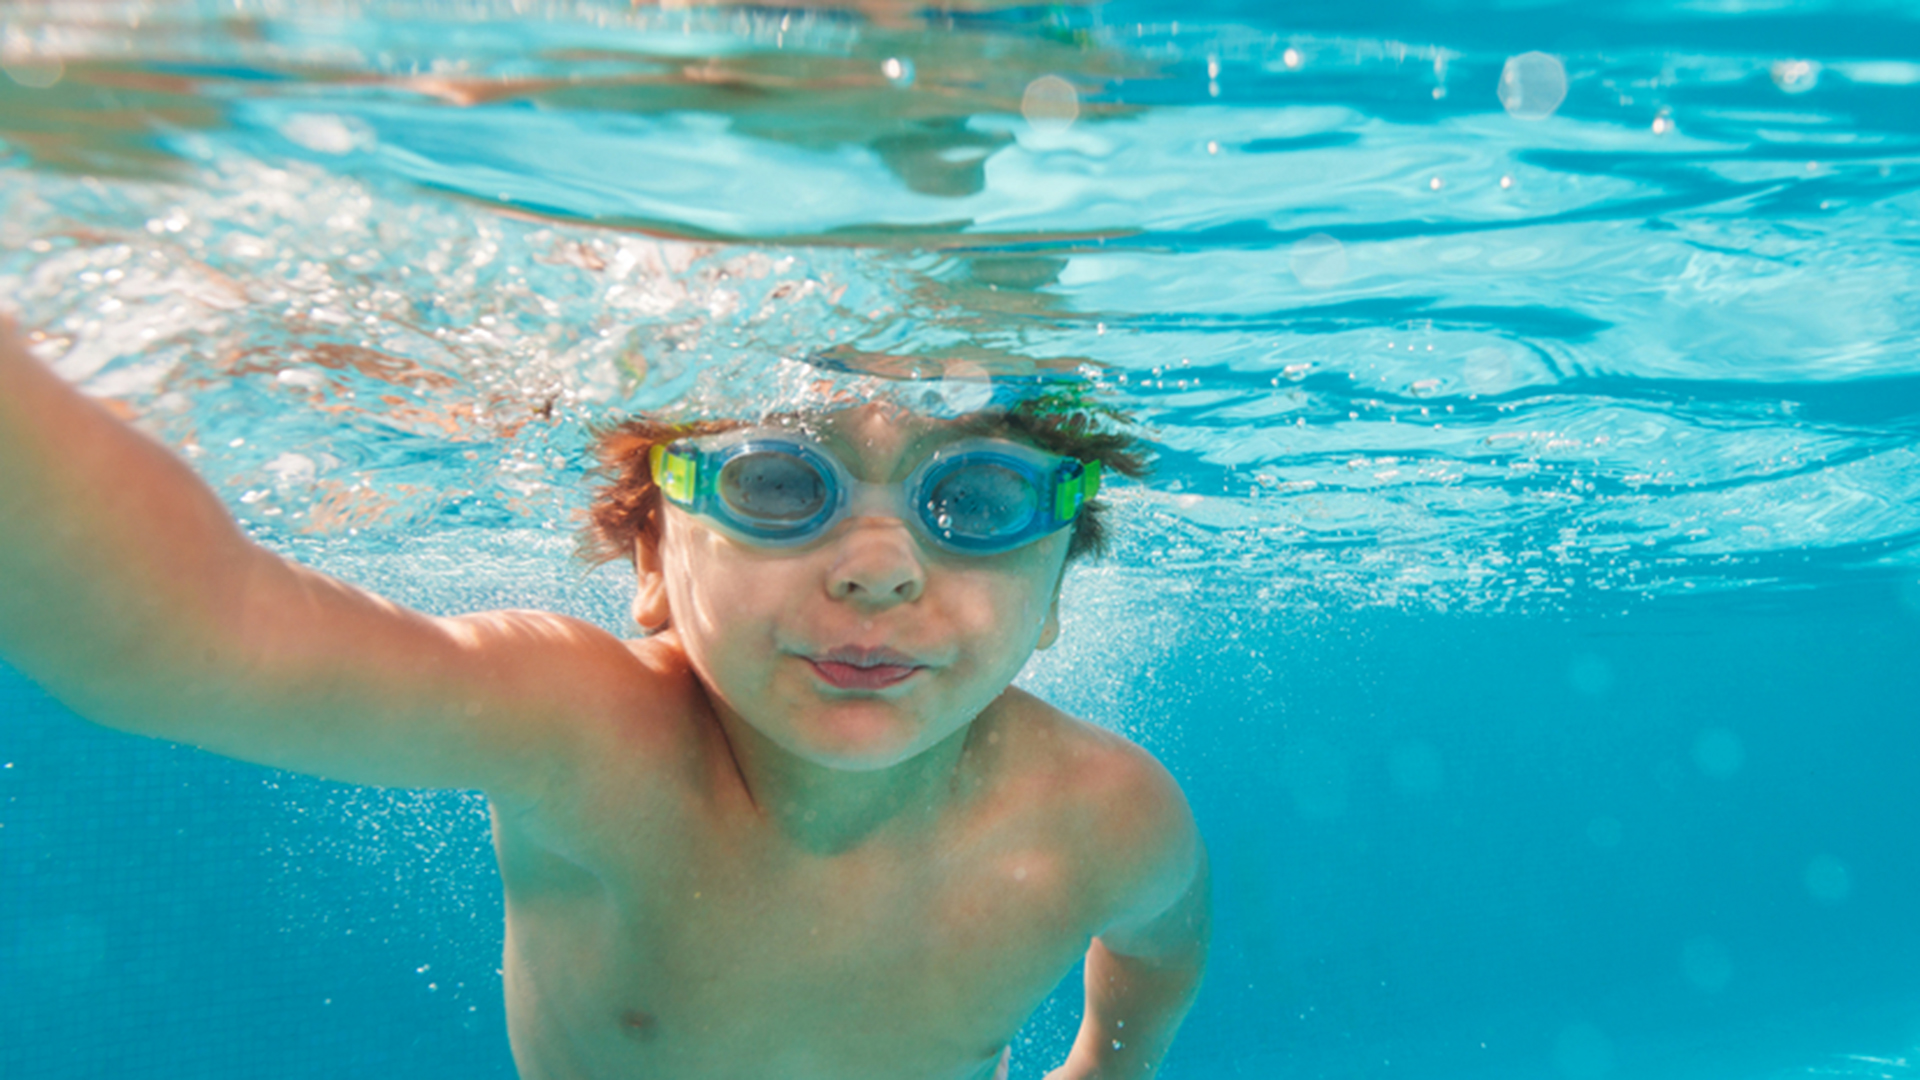 What To Know About Dry Drowning And How To Prevent It